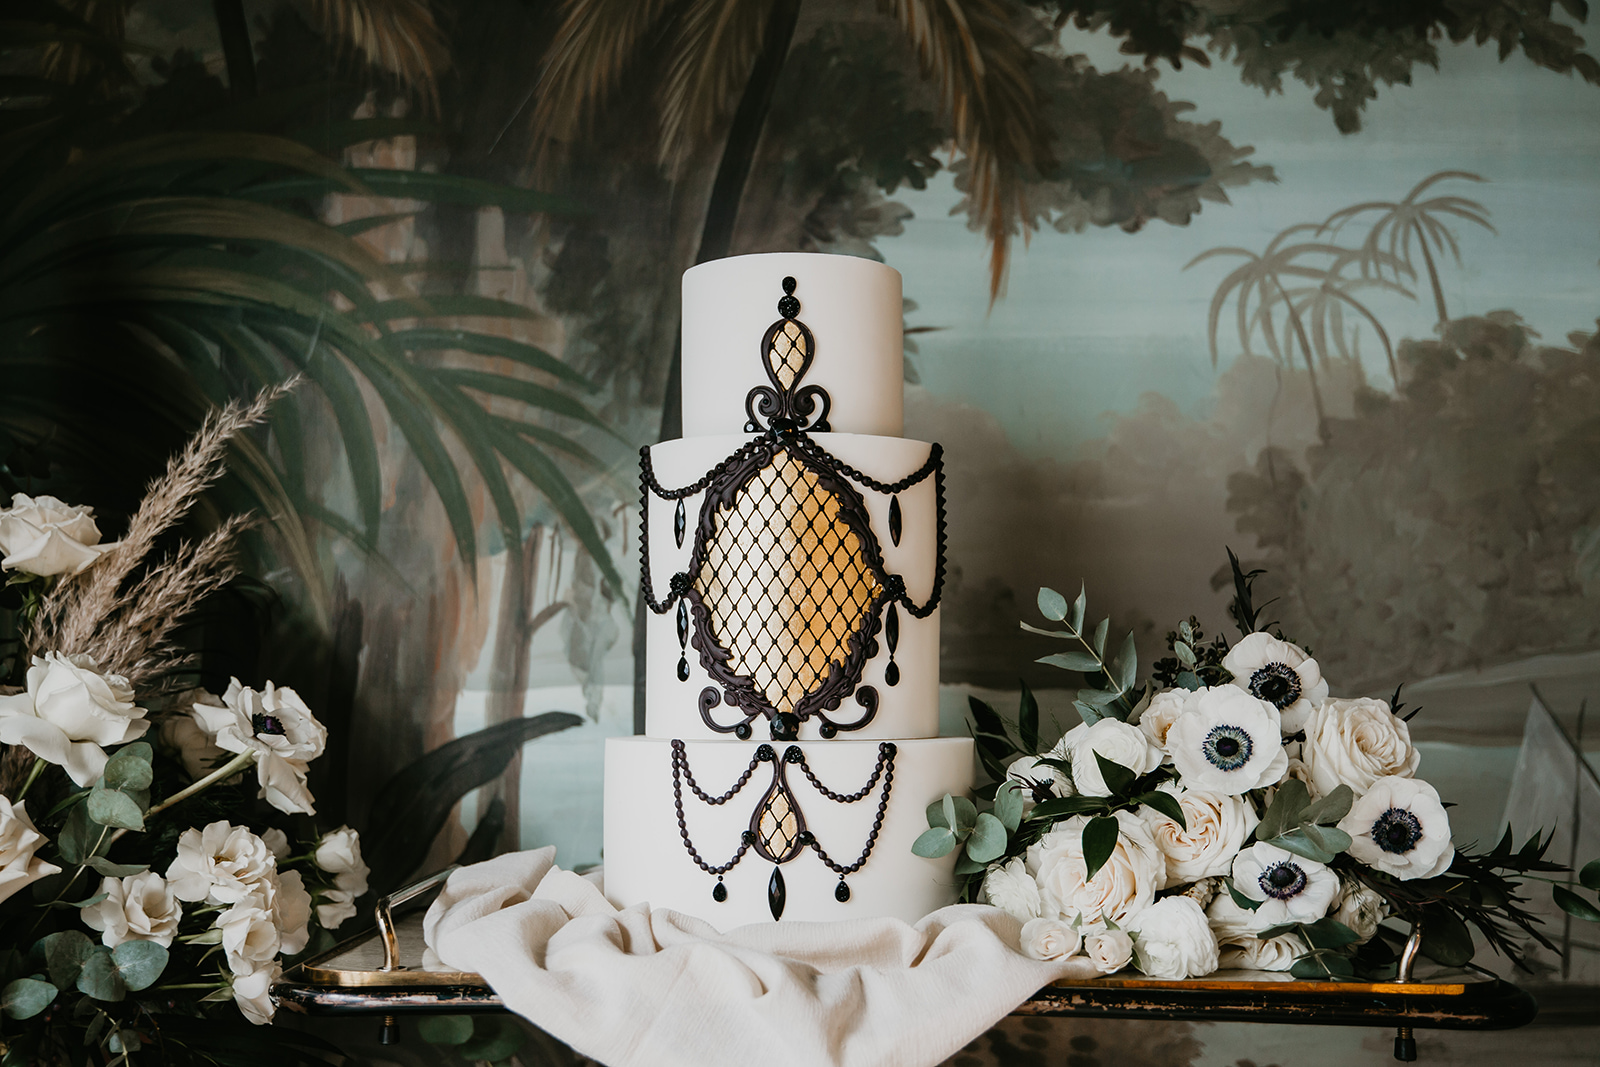 calgary wedding cake design inspiration